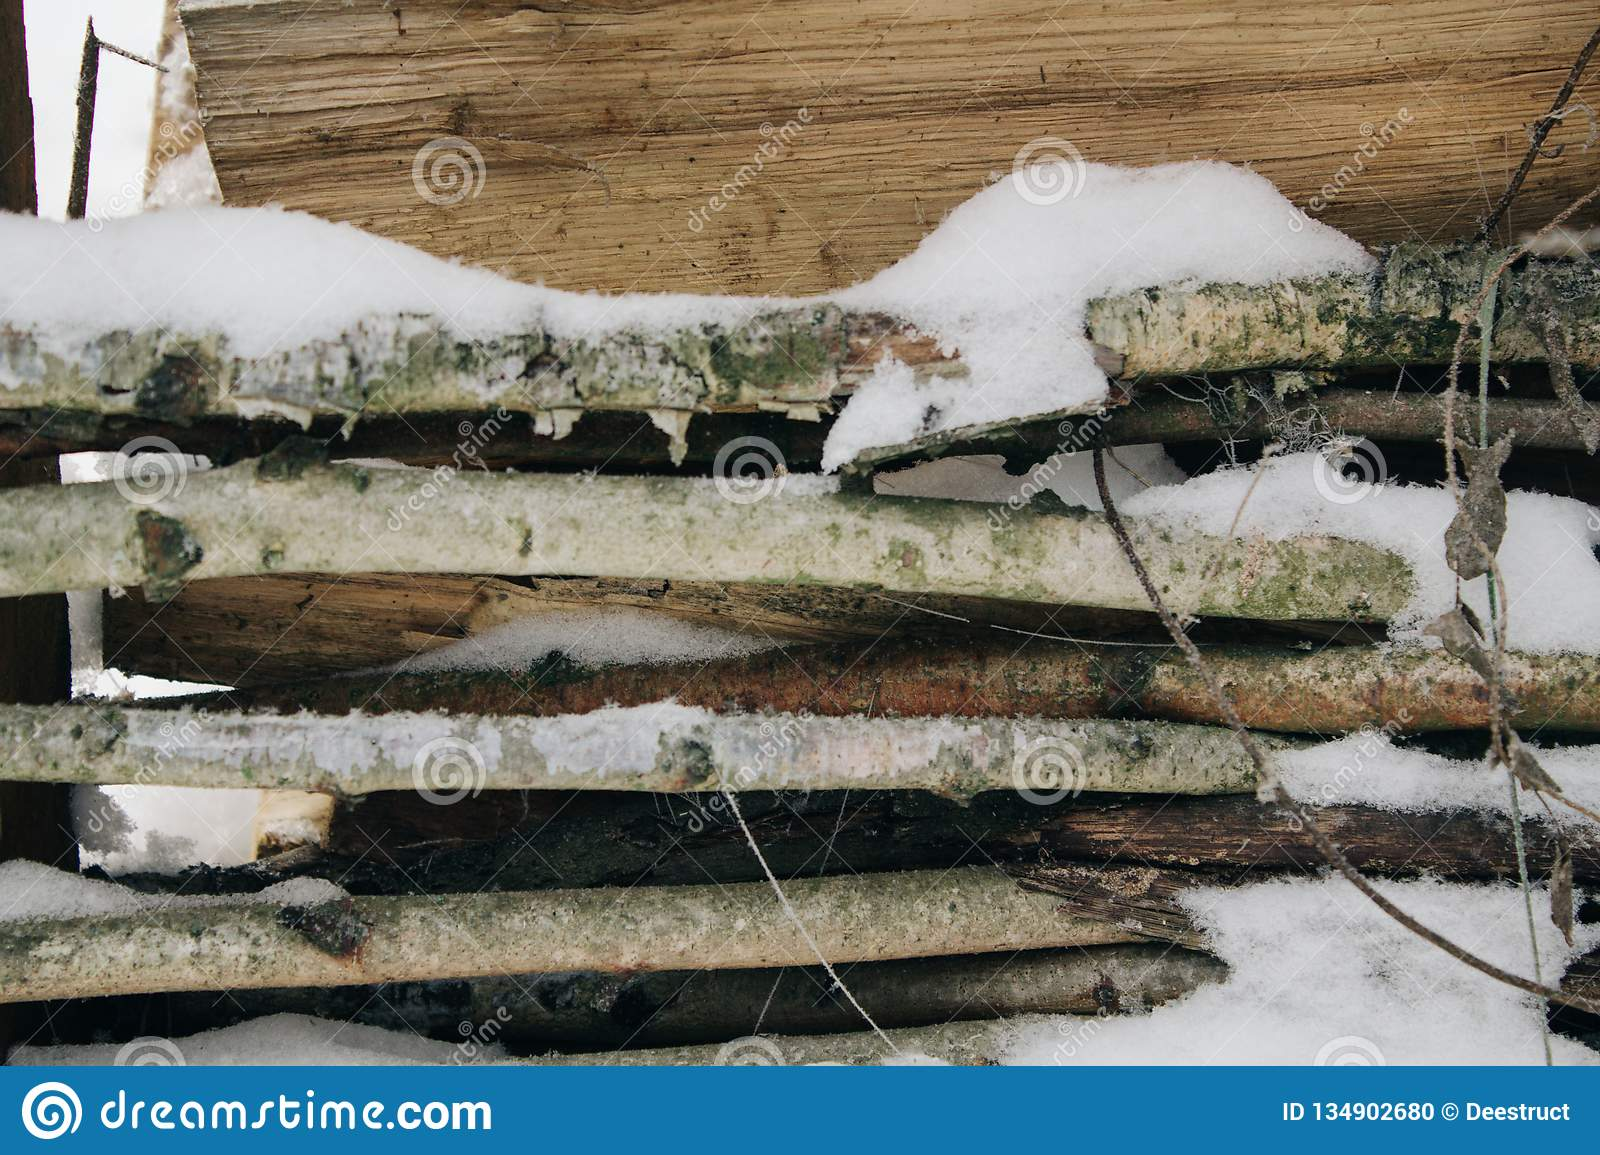 Snow-covered firewood stacked under a canopy, firewood for the winter. Winter landscape